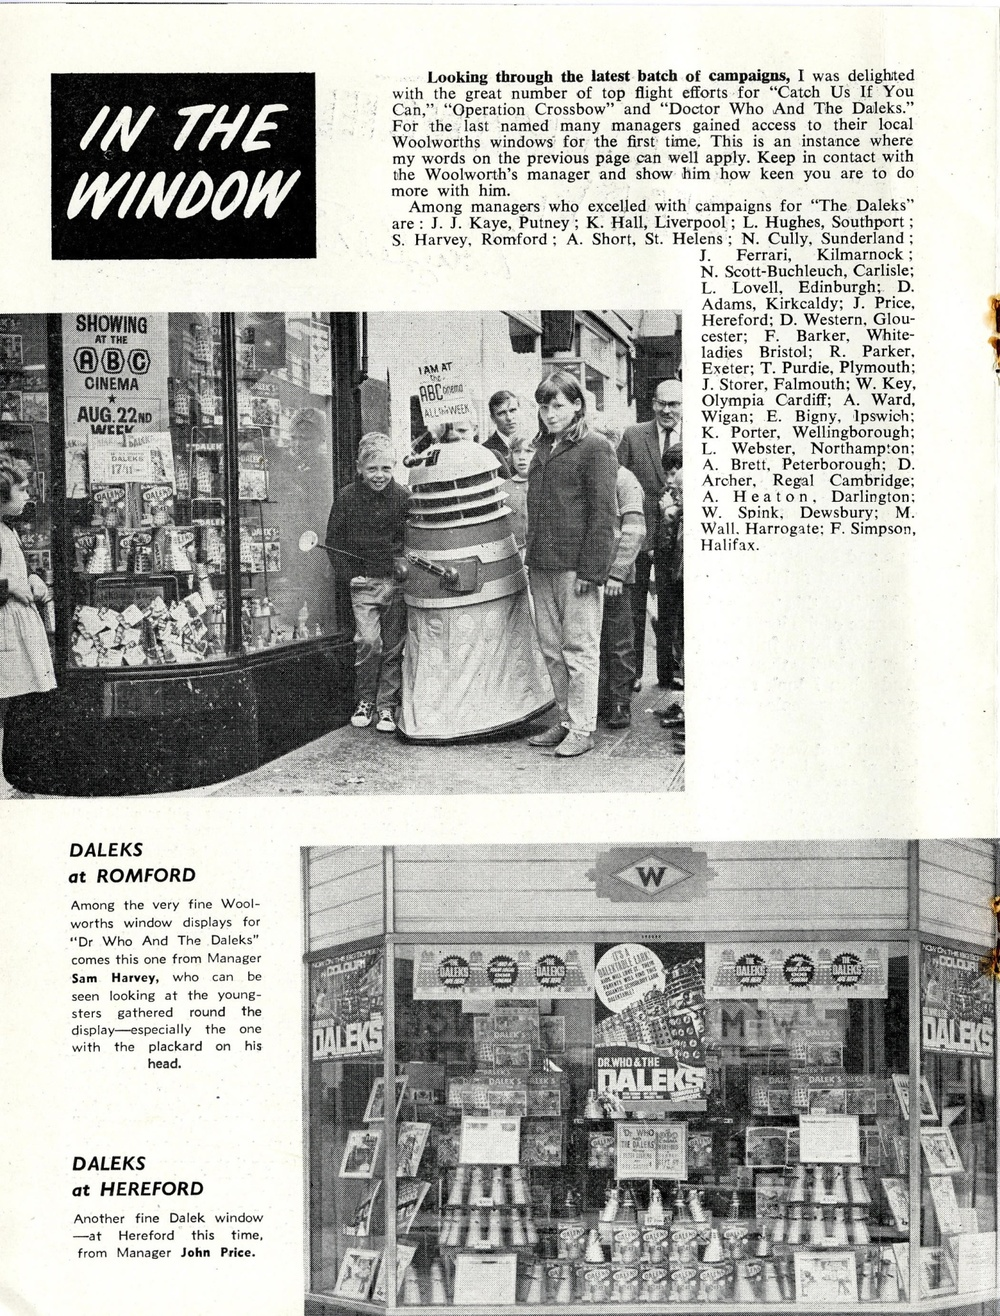 Article on promotional store tie-ins to the film Dr. Who and the Daleks in ABC News (ABC Minors Special), October 1965